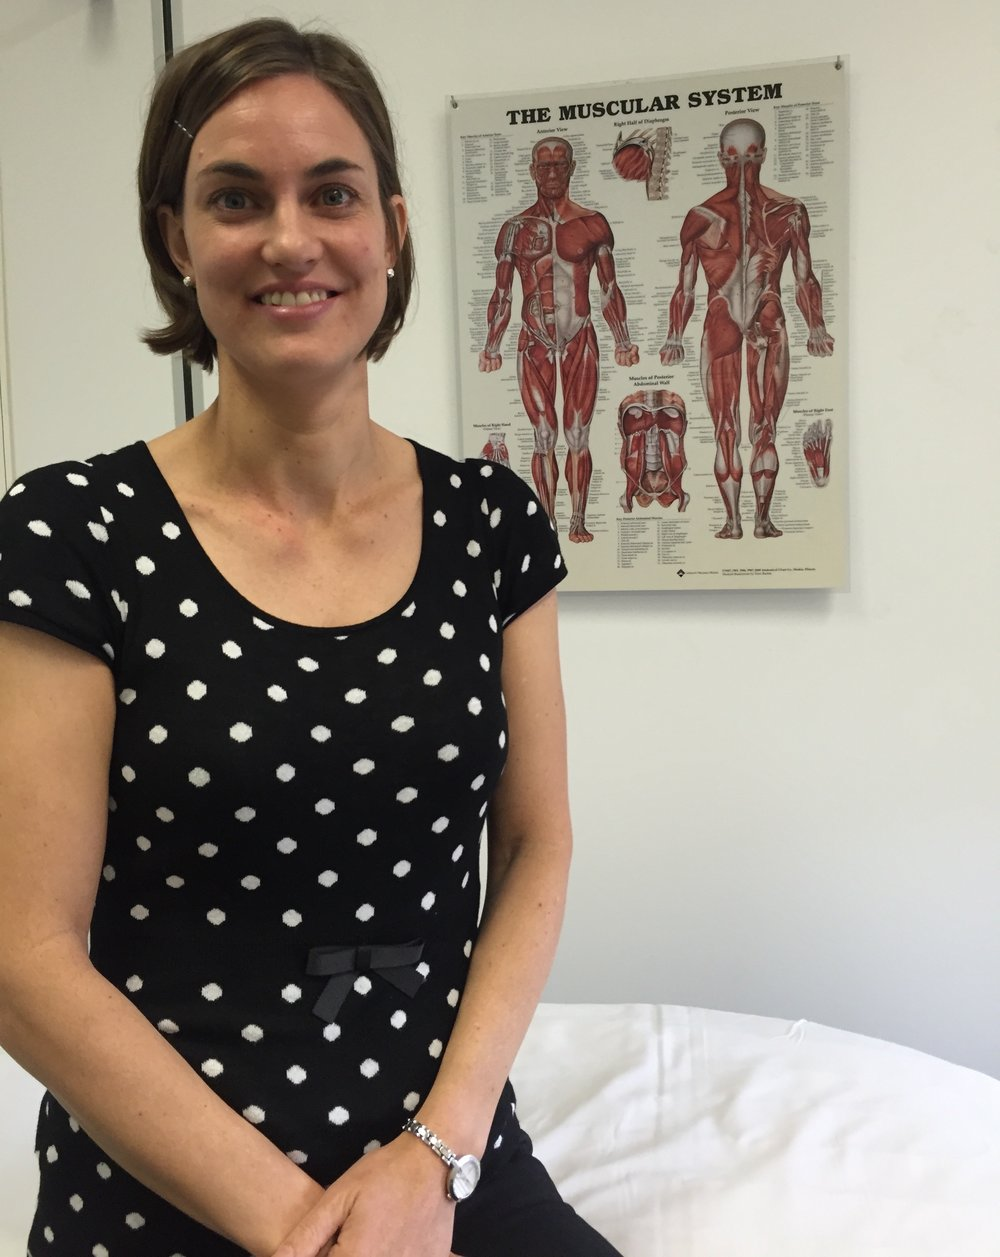 Susan Noonan - PHYSIOTHERAPIST PILATES INSTRUCTOR